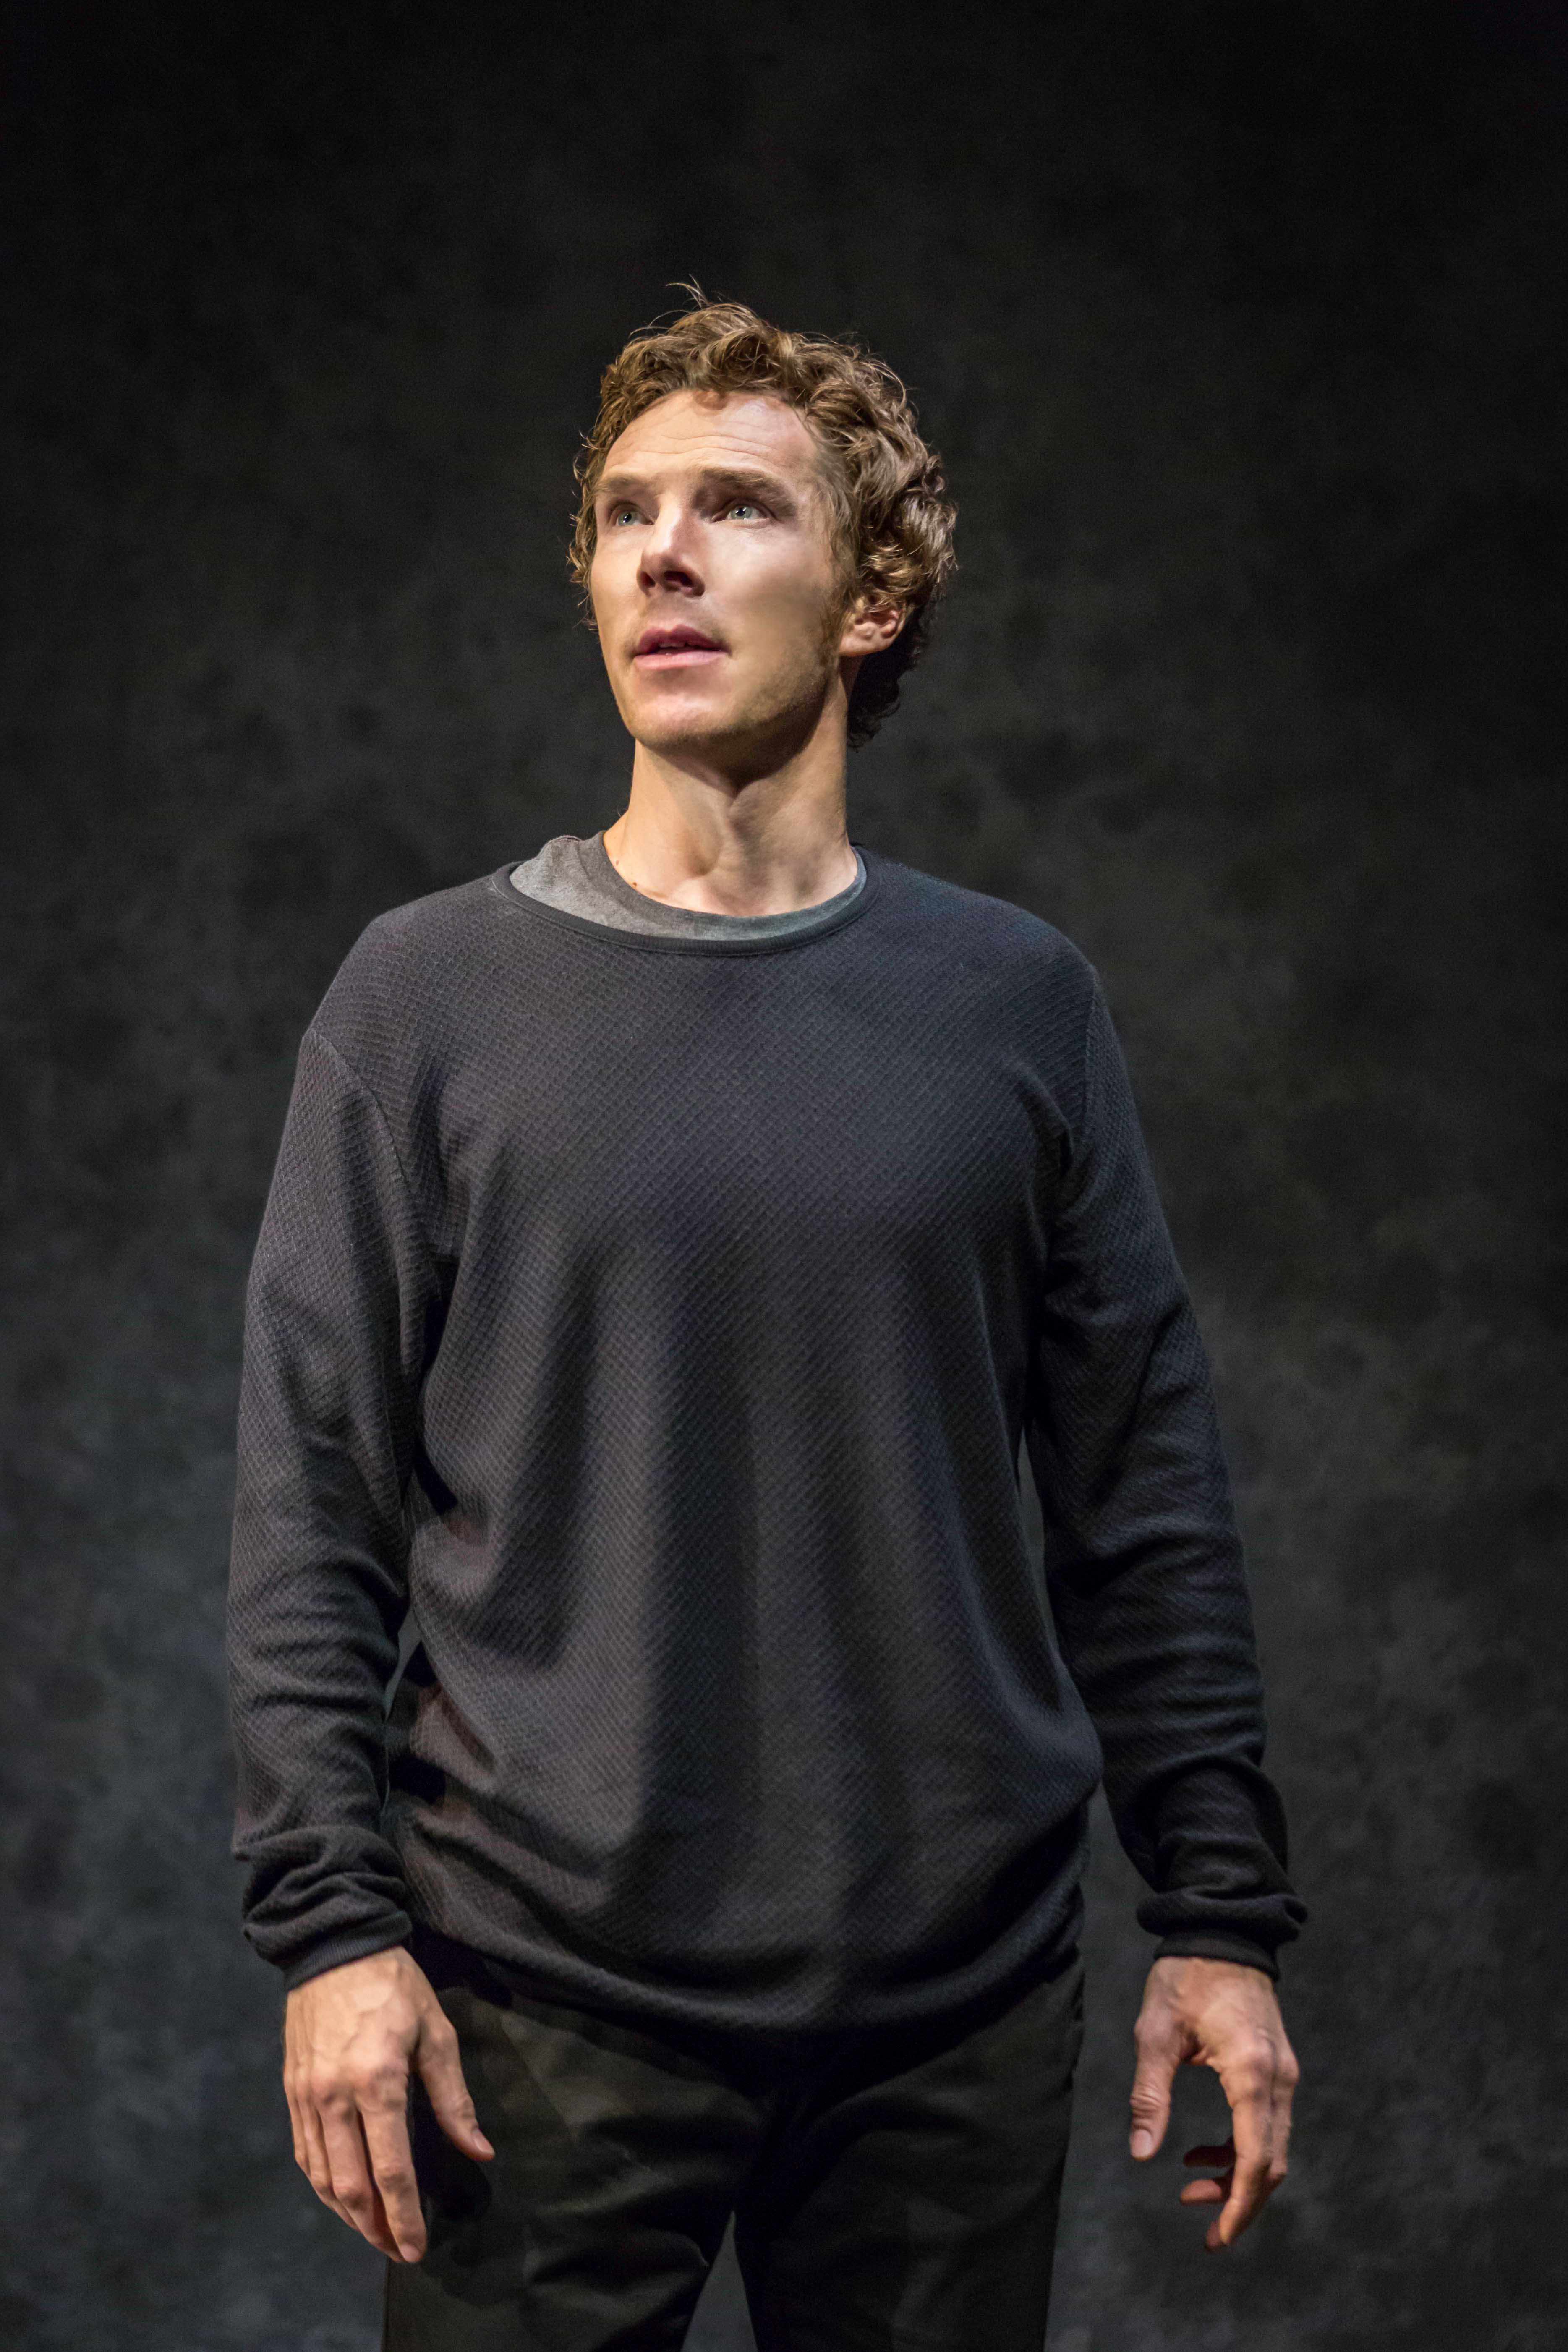 Can someone help me with my term paper? Oresteia/hamlet?